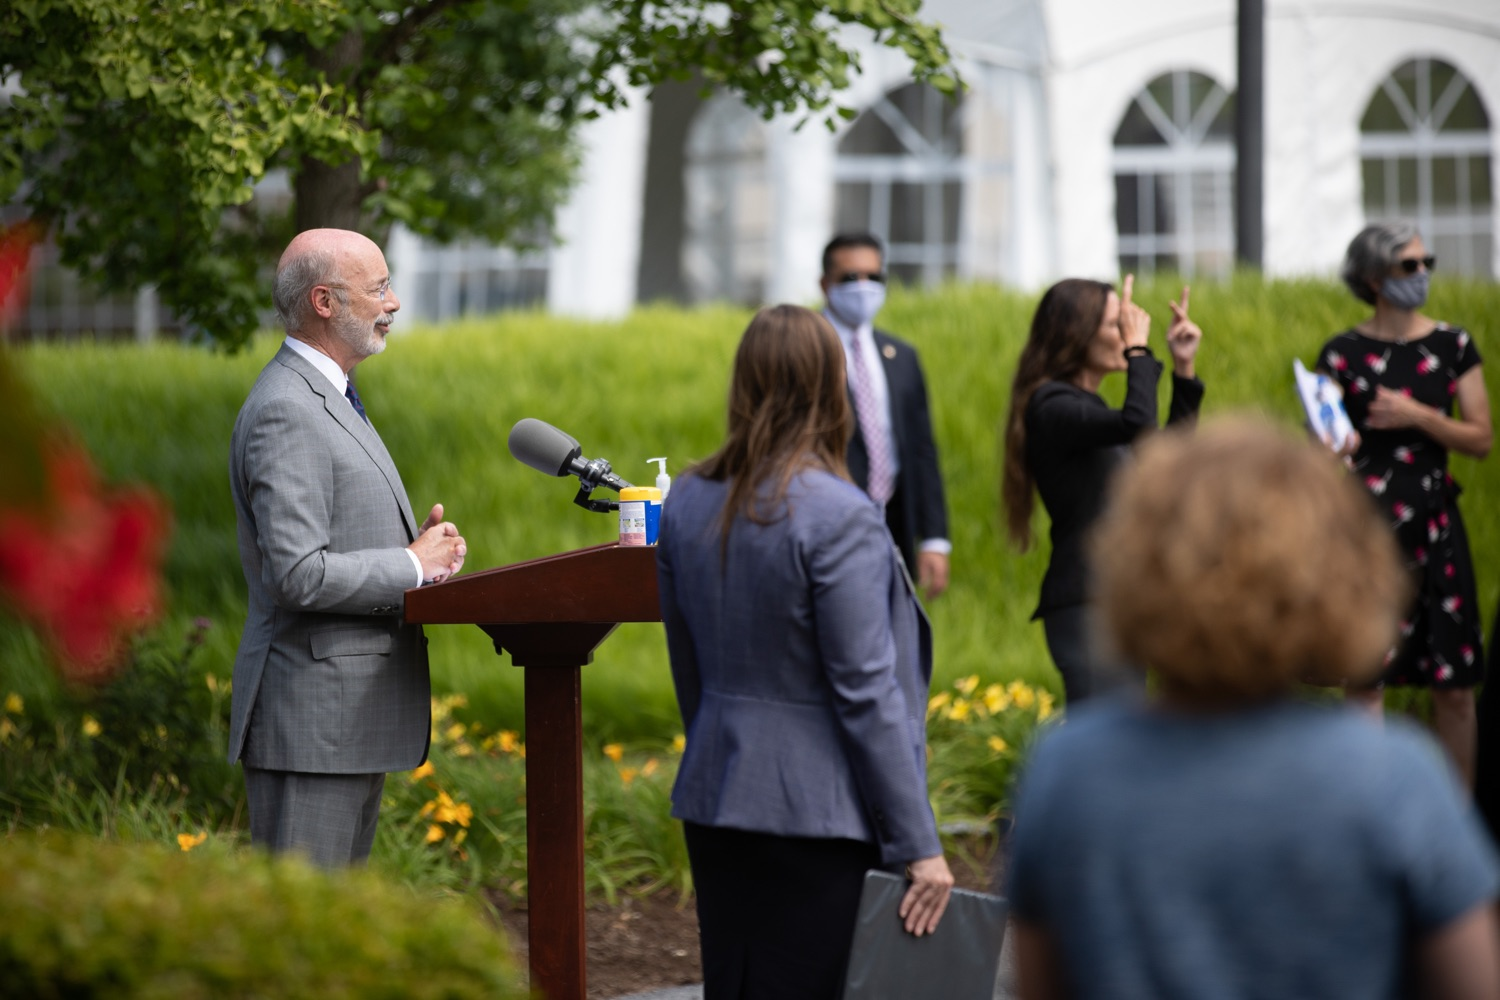 "<a href=""https://filesource.wostreaming.net/commonwealthofpa/photo/18093_gov-healthcare_workers_dz_20.jpg"" target=""_blank"">⇣ Download Photo<br></a>Pennsylvania Governor Tom Wolf answering questions from the press during his visit to Milton S. Hershey Medical Center. As the commonwealth continues its measured, phased reopening and COVID-19 case counts continue to decline, Governor Tom Wolf visited Penn State Milton S. Hershey Medical Center today to thank staff and learn more about how the facility is handling the pandemic and preparing for a possible resurgence in the fall.  Harrisburg, PA  June 24, 2020"